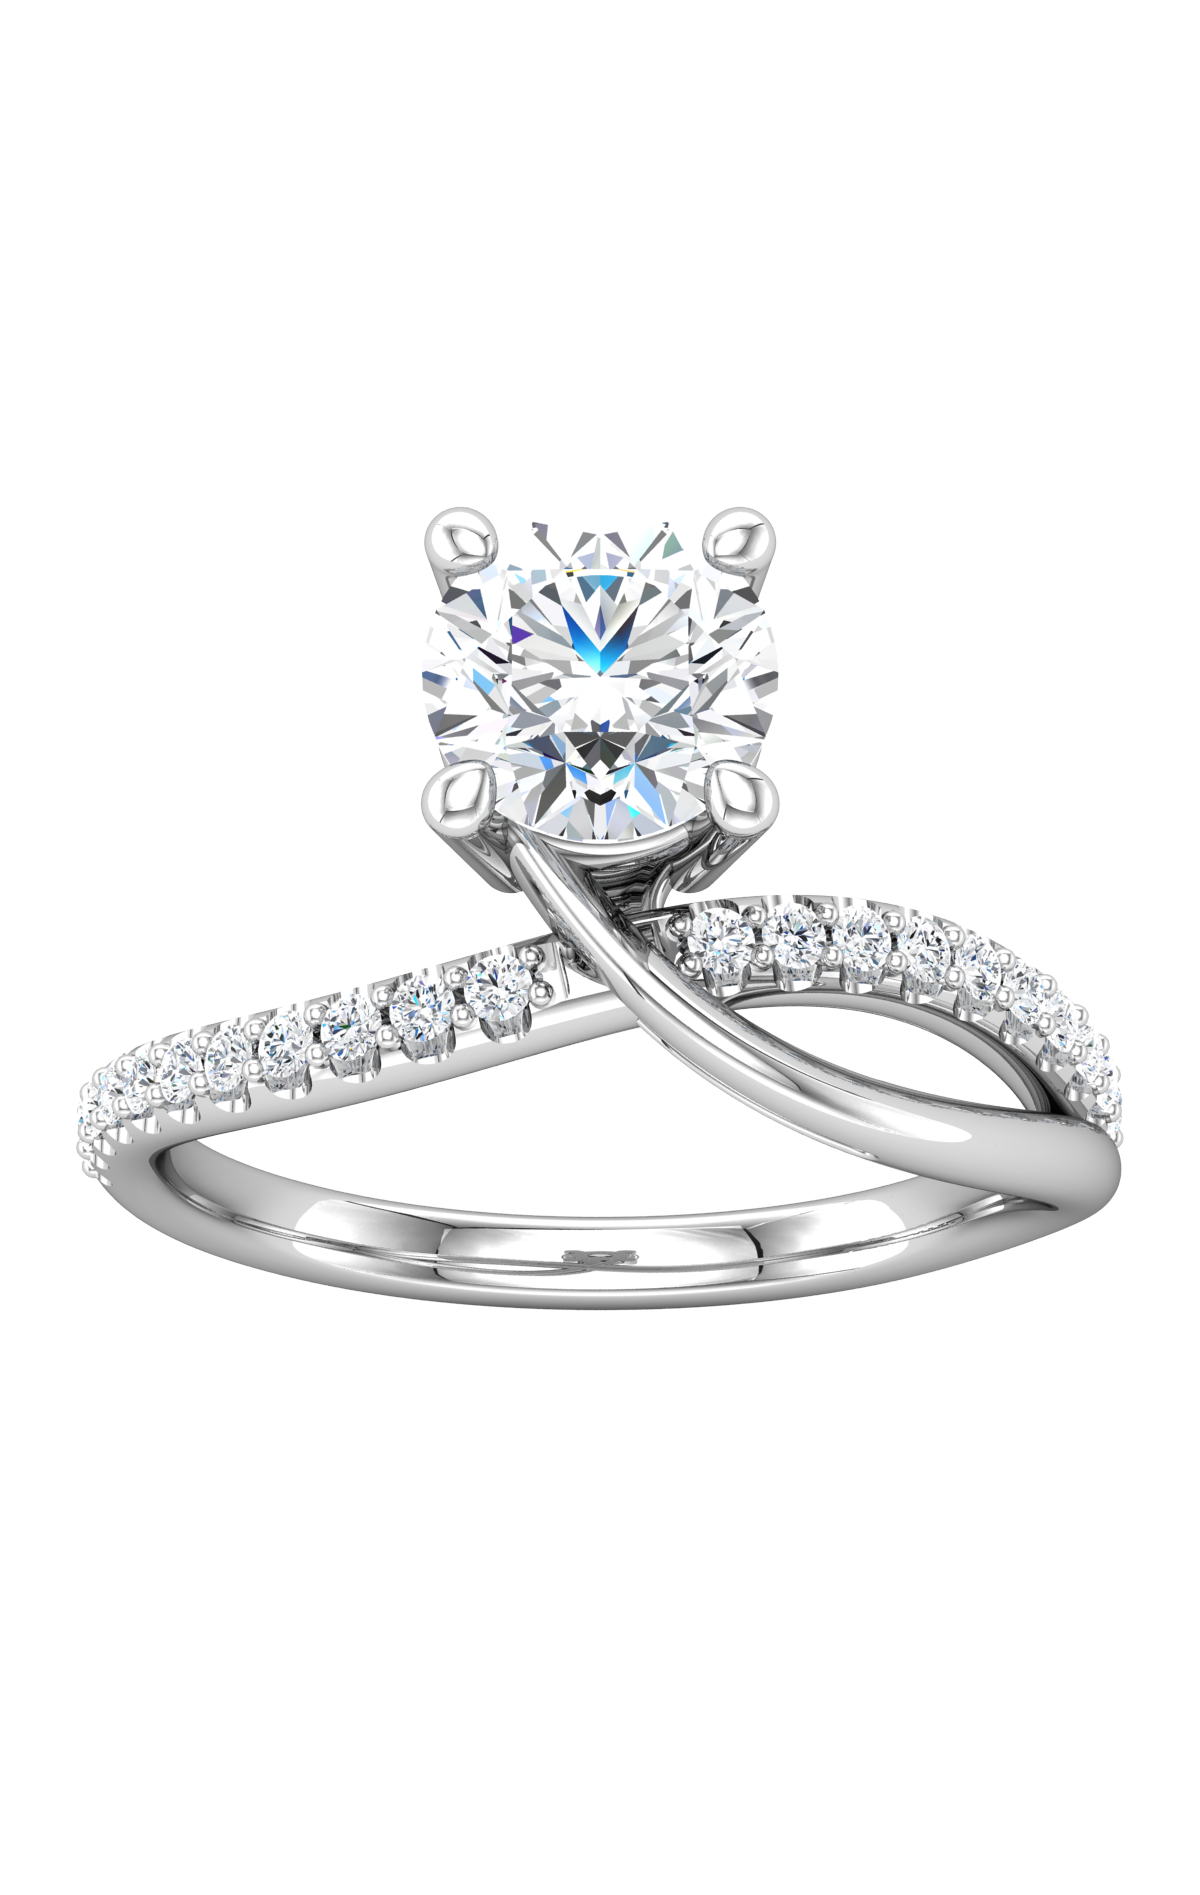 diamond tips watches jewellery point we ring gold engagement exchange buy sell to choose an and me jewelers rings near